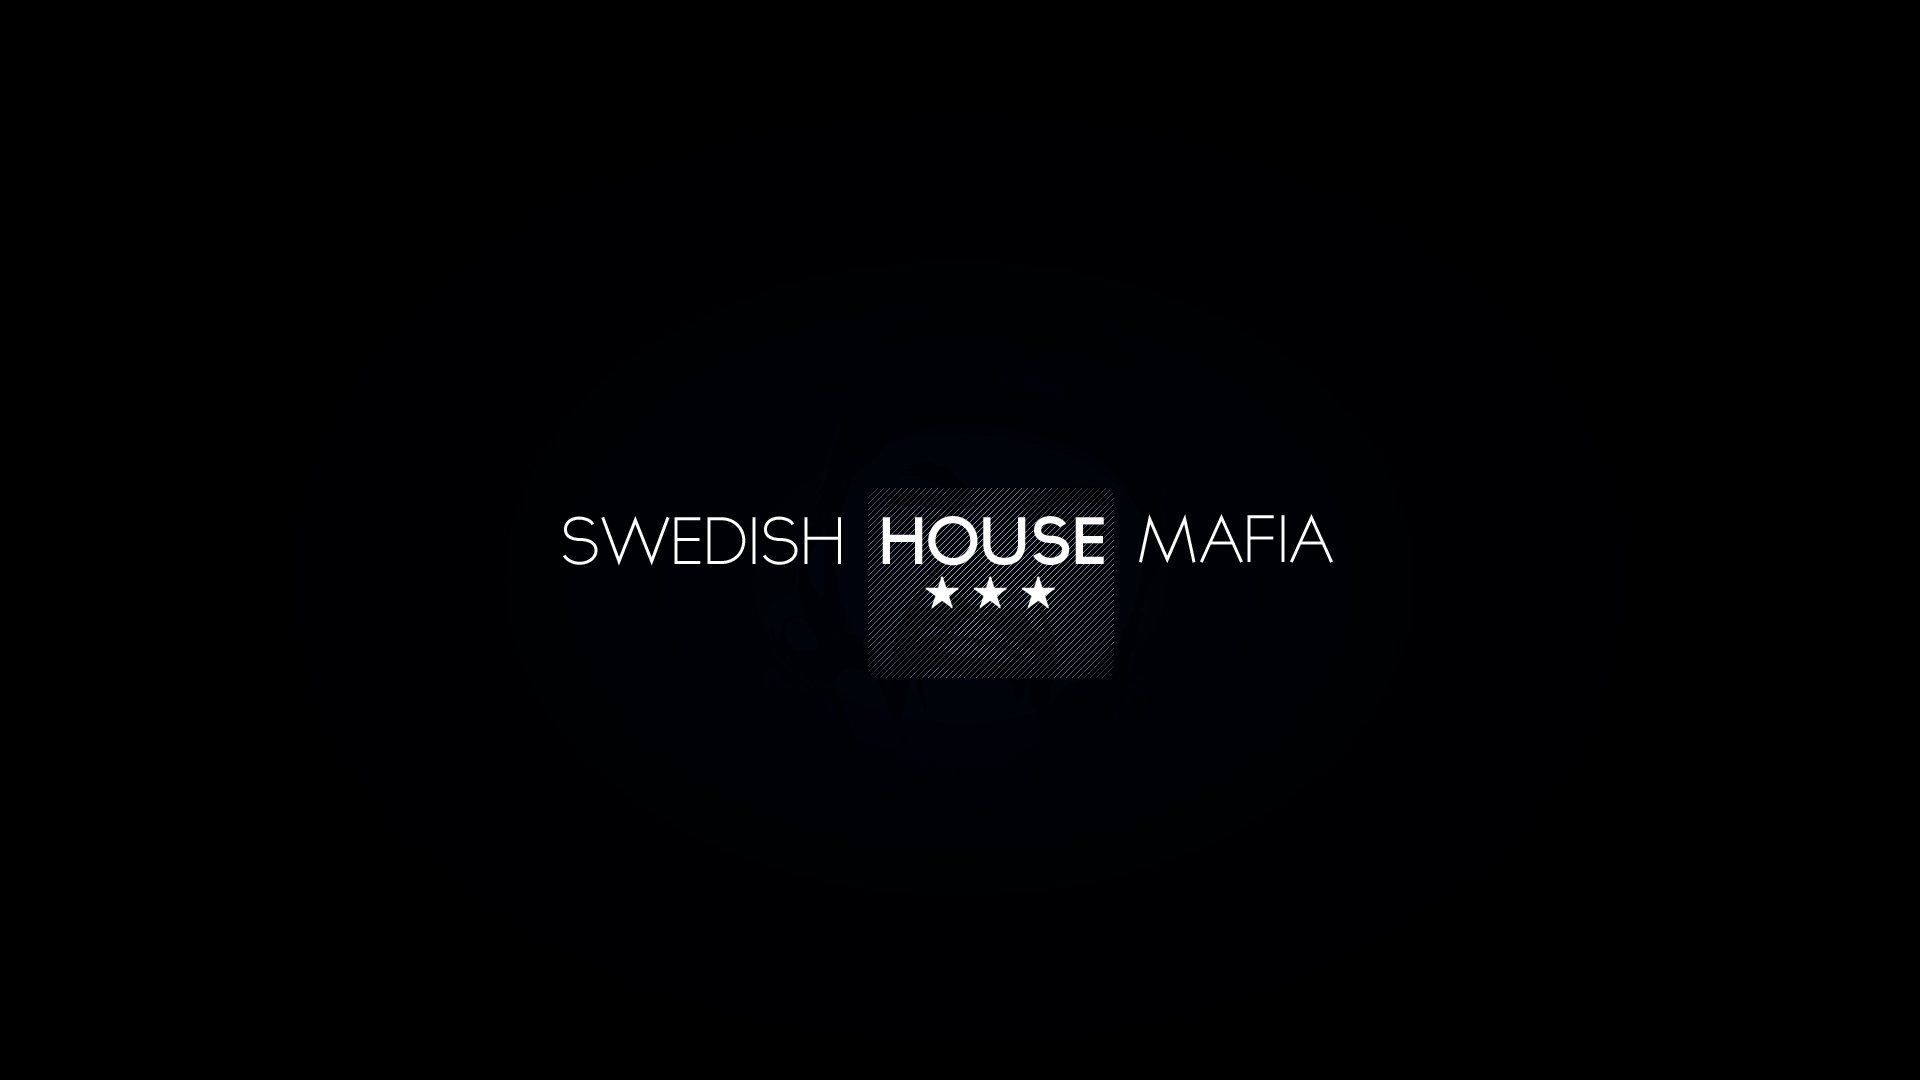 Swedish House Mafia Wallpaper by pR0X0R